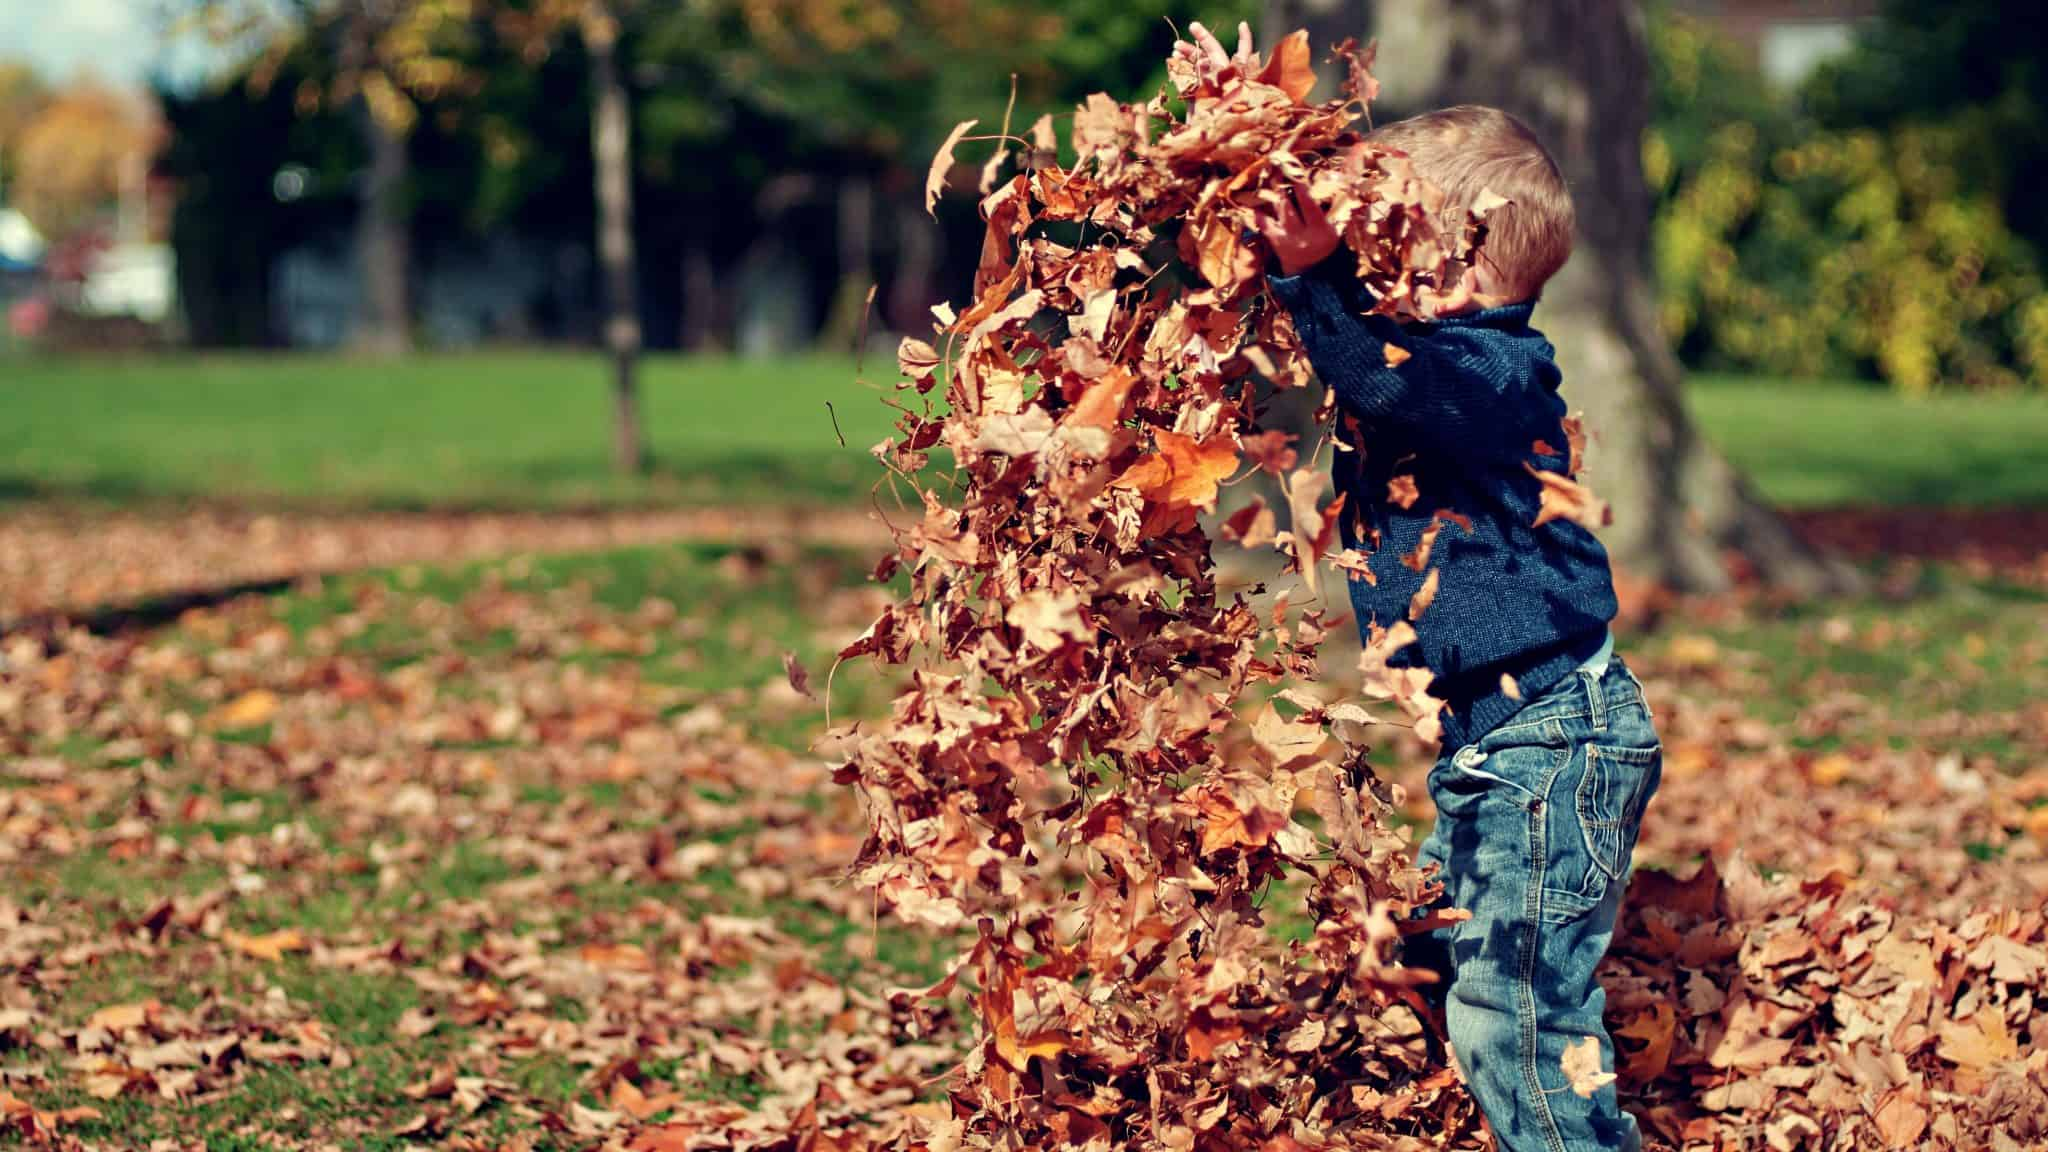 Child throwing pile of dry leaves up